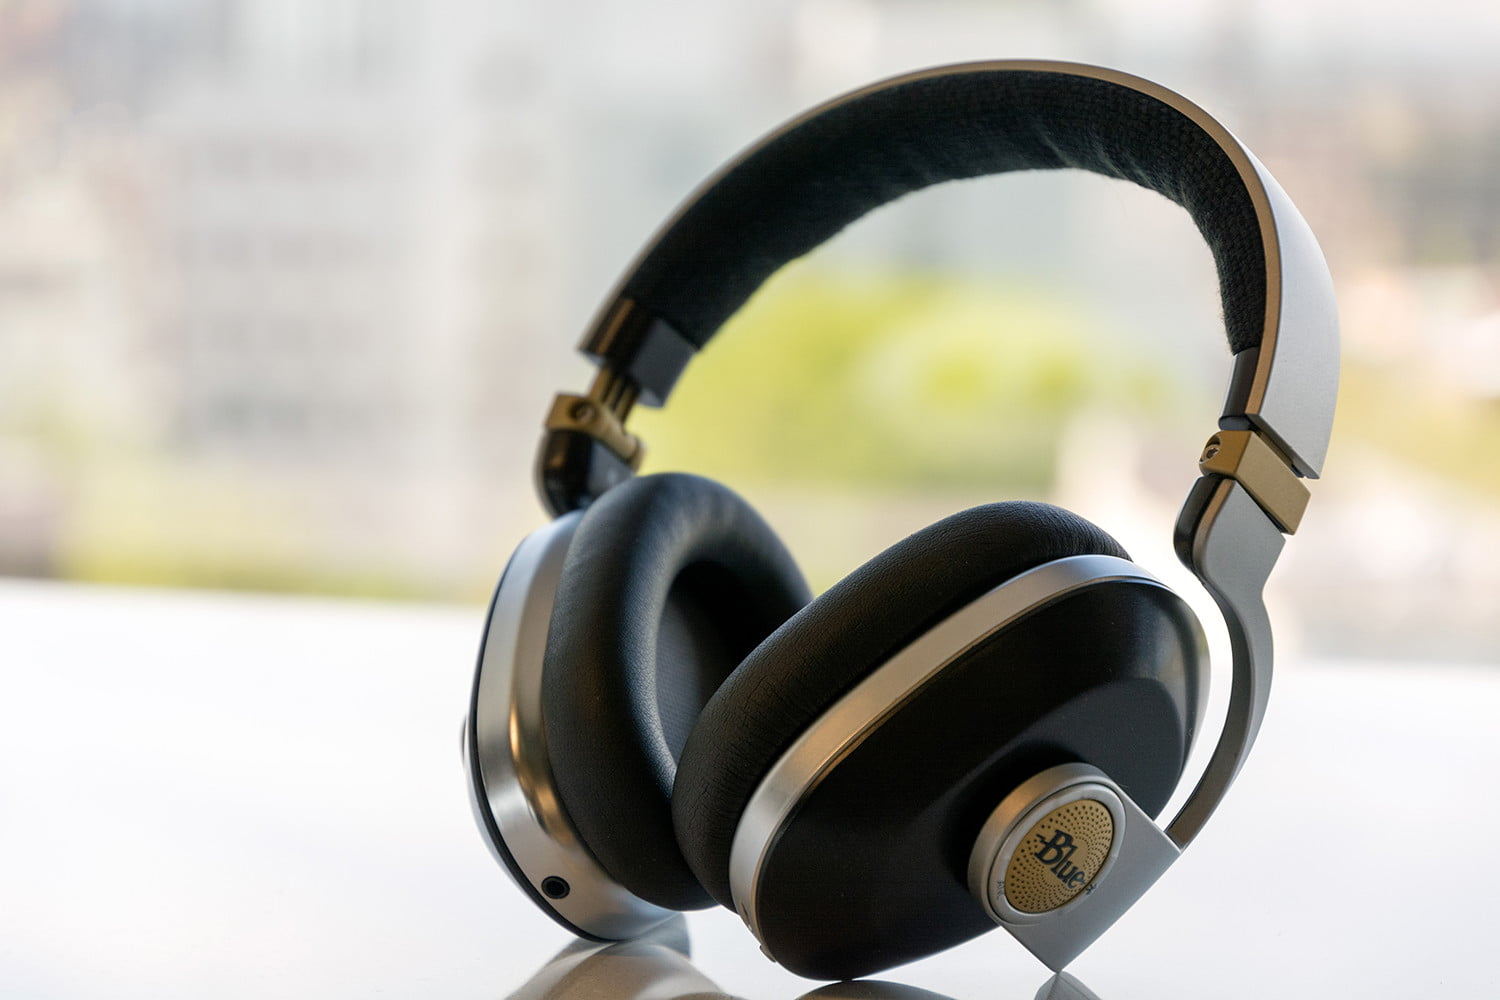 Blue Satellite Wireless Noise Cancelling Headphones Review